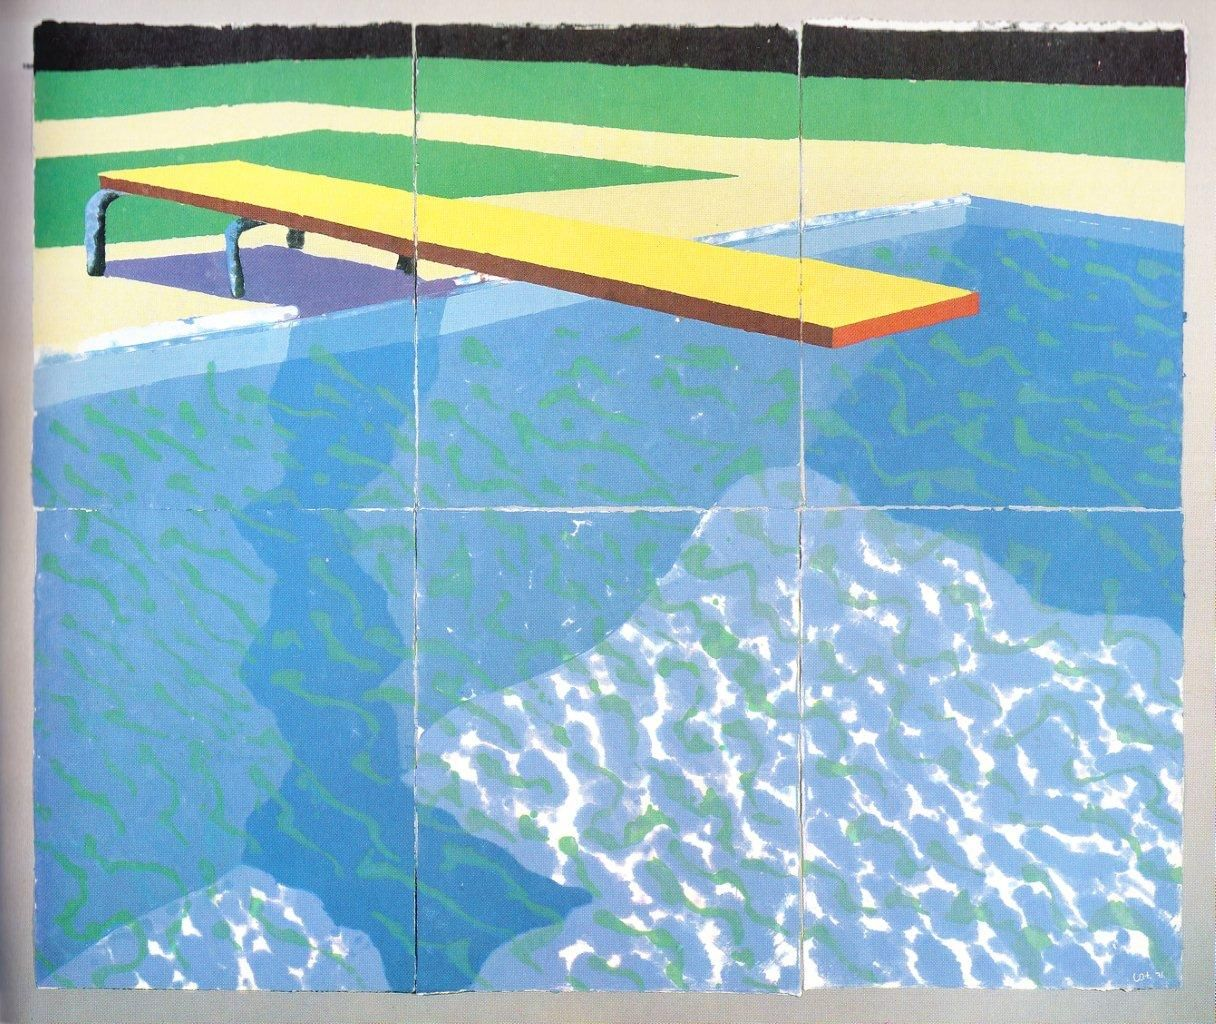 David hockney pool series palm beach chic david - David hockney swimming pool paintings ...